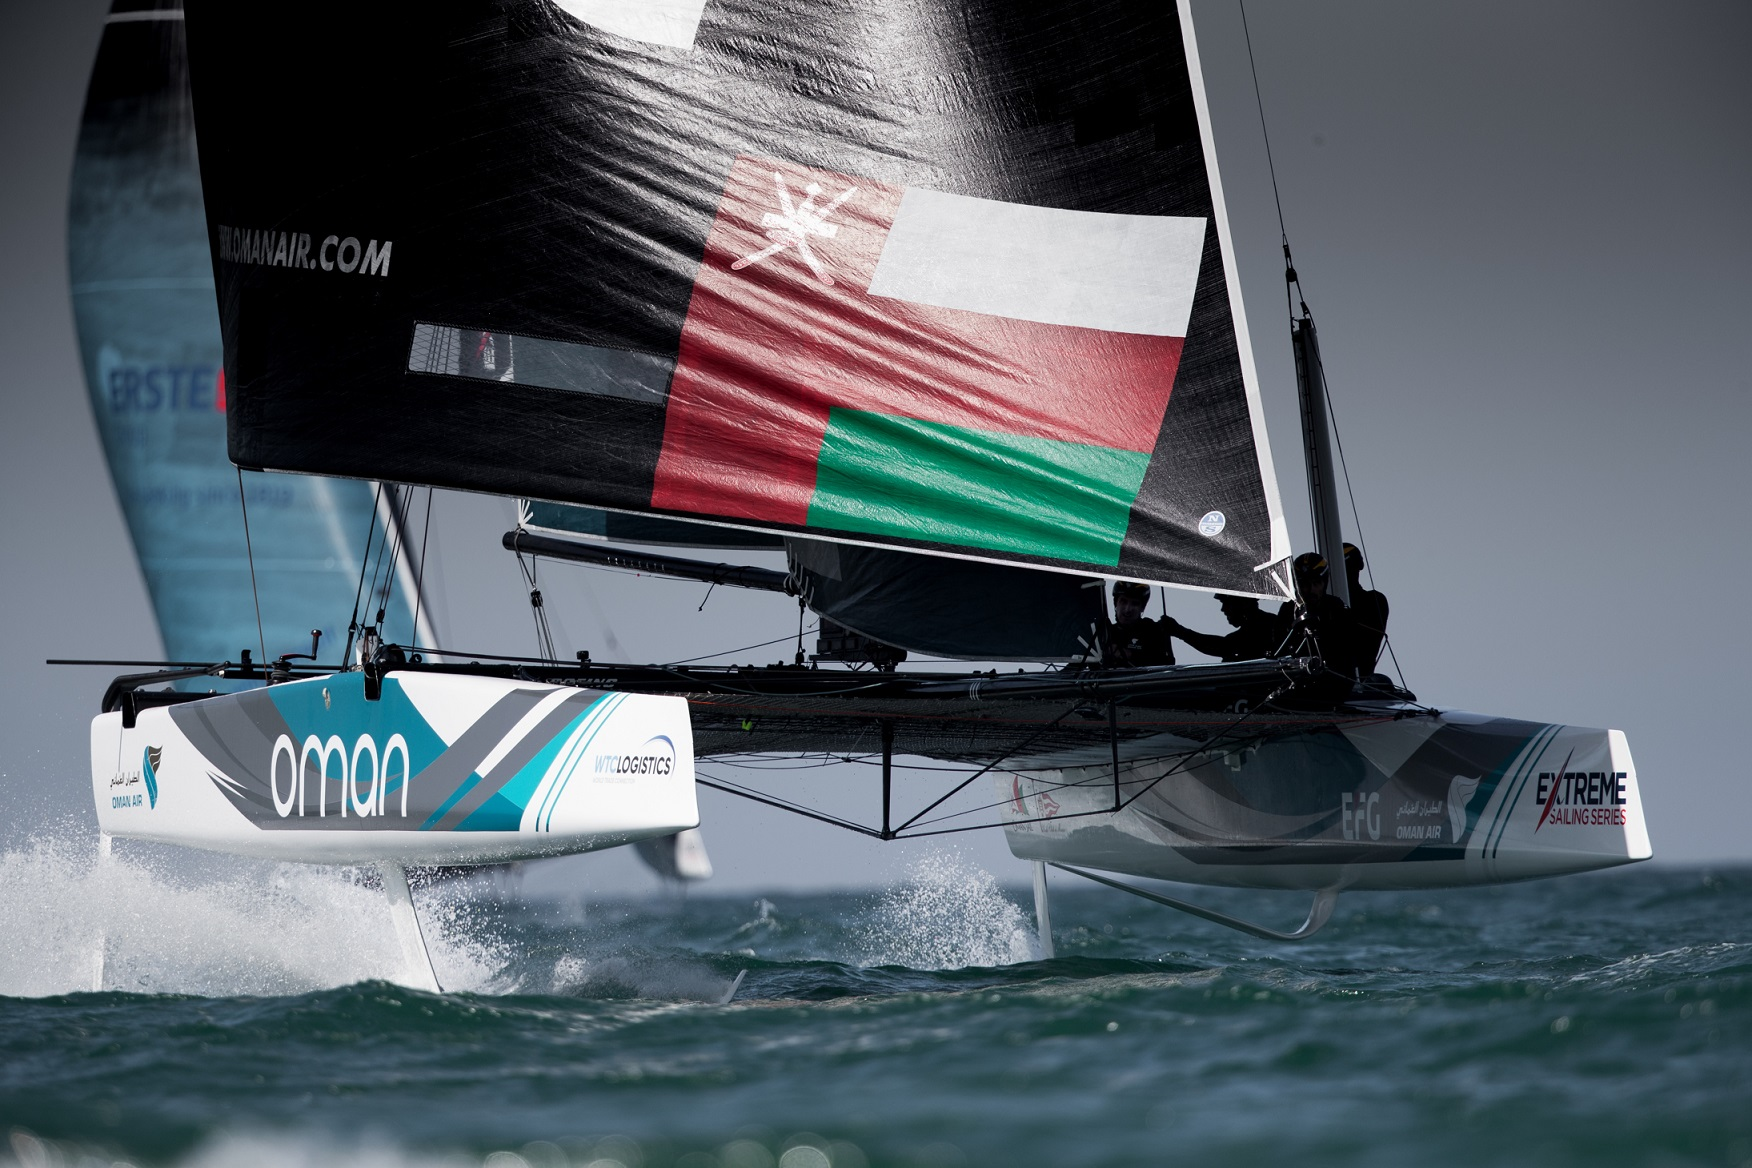 Oman Air go west aiming to continue their form in San Diego